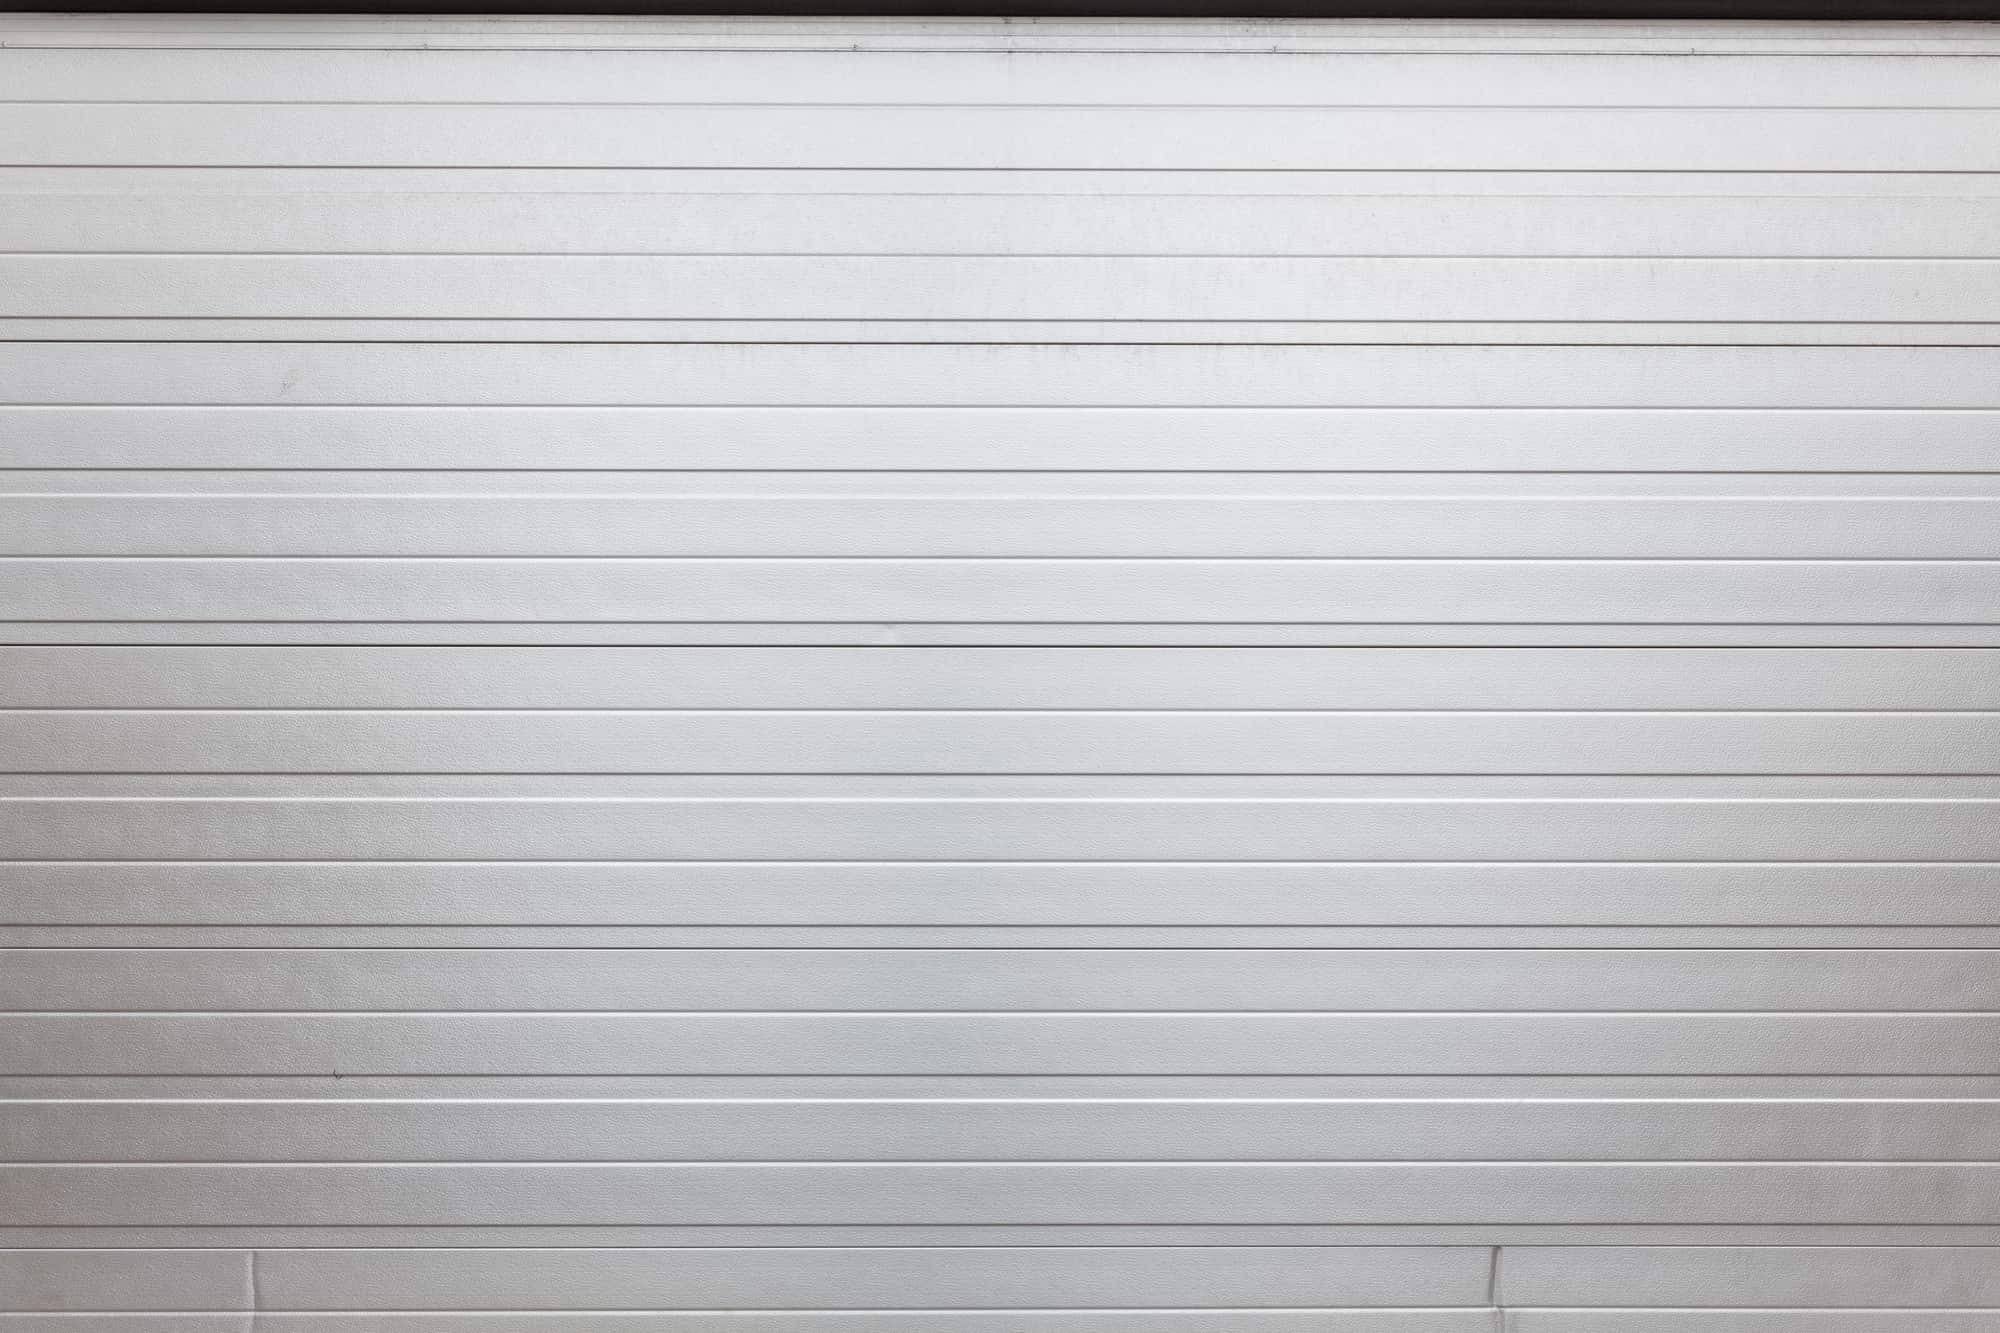 white garage door texture. aluminum garage door white texture